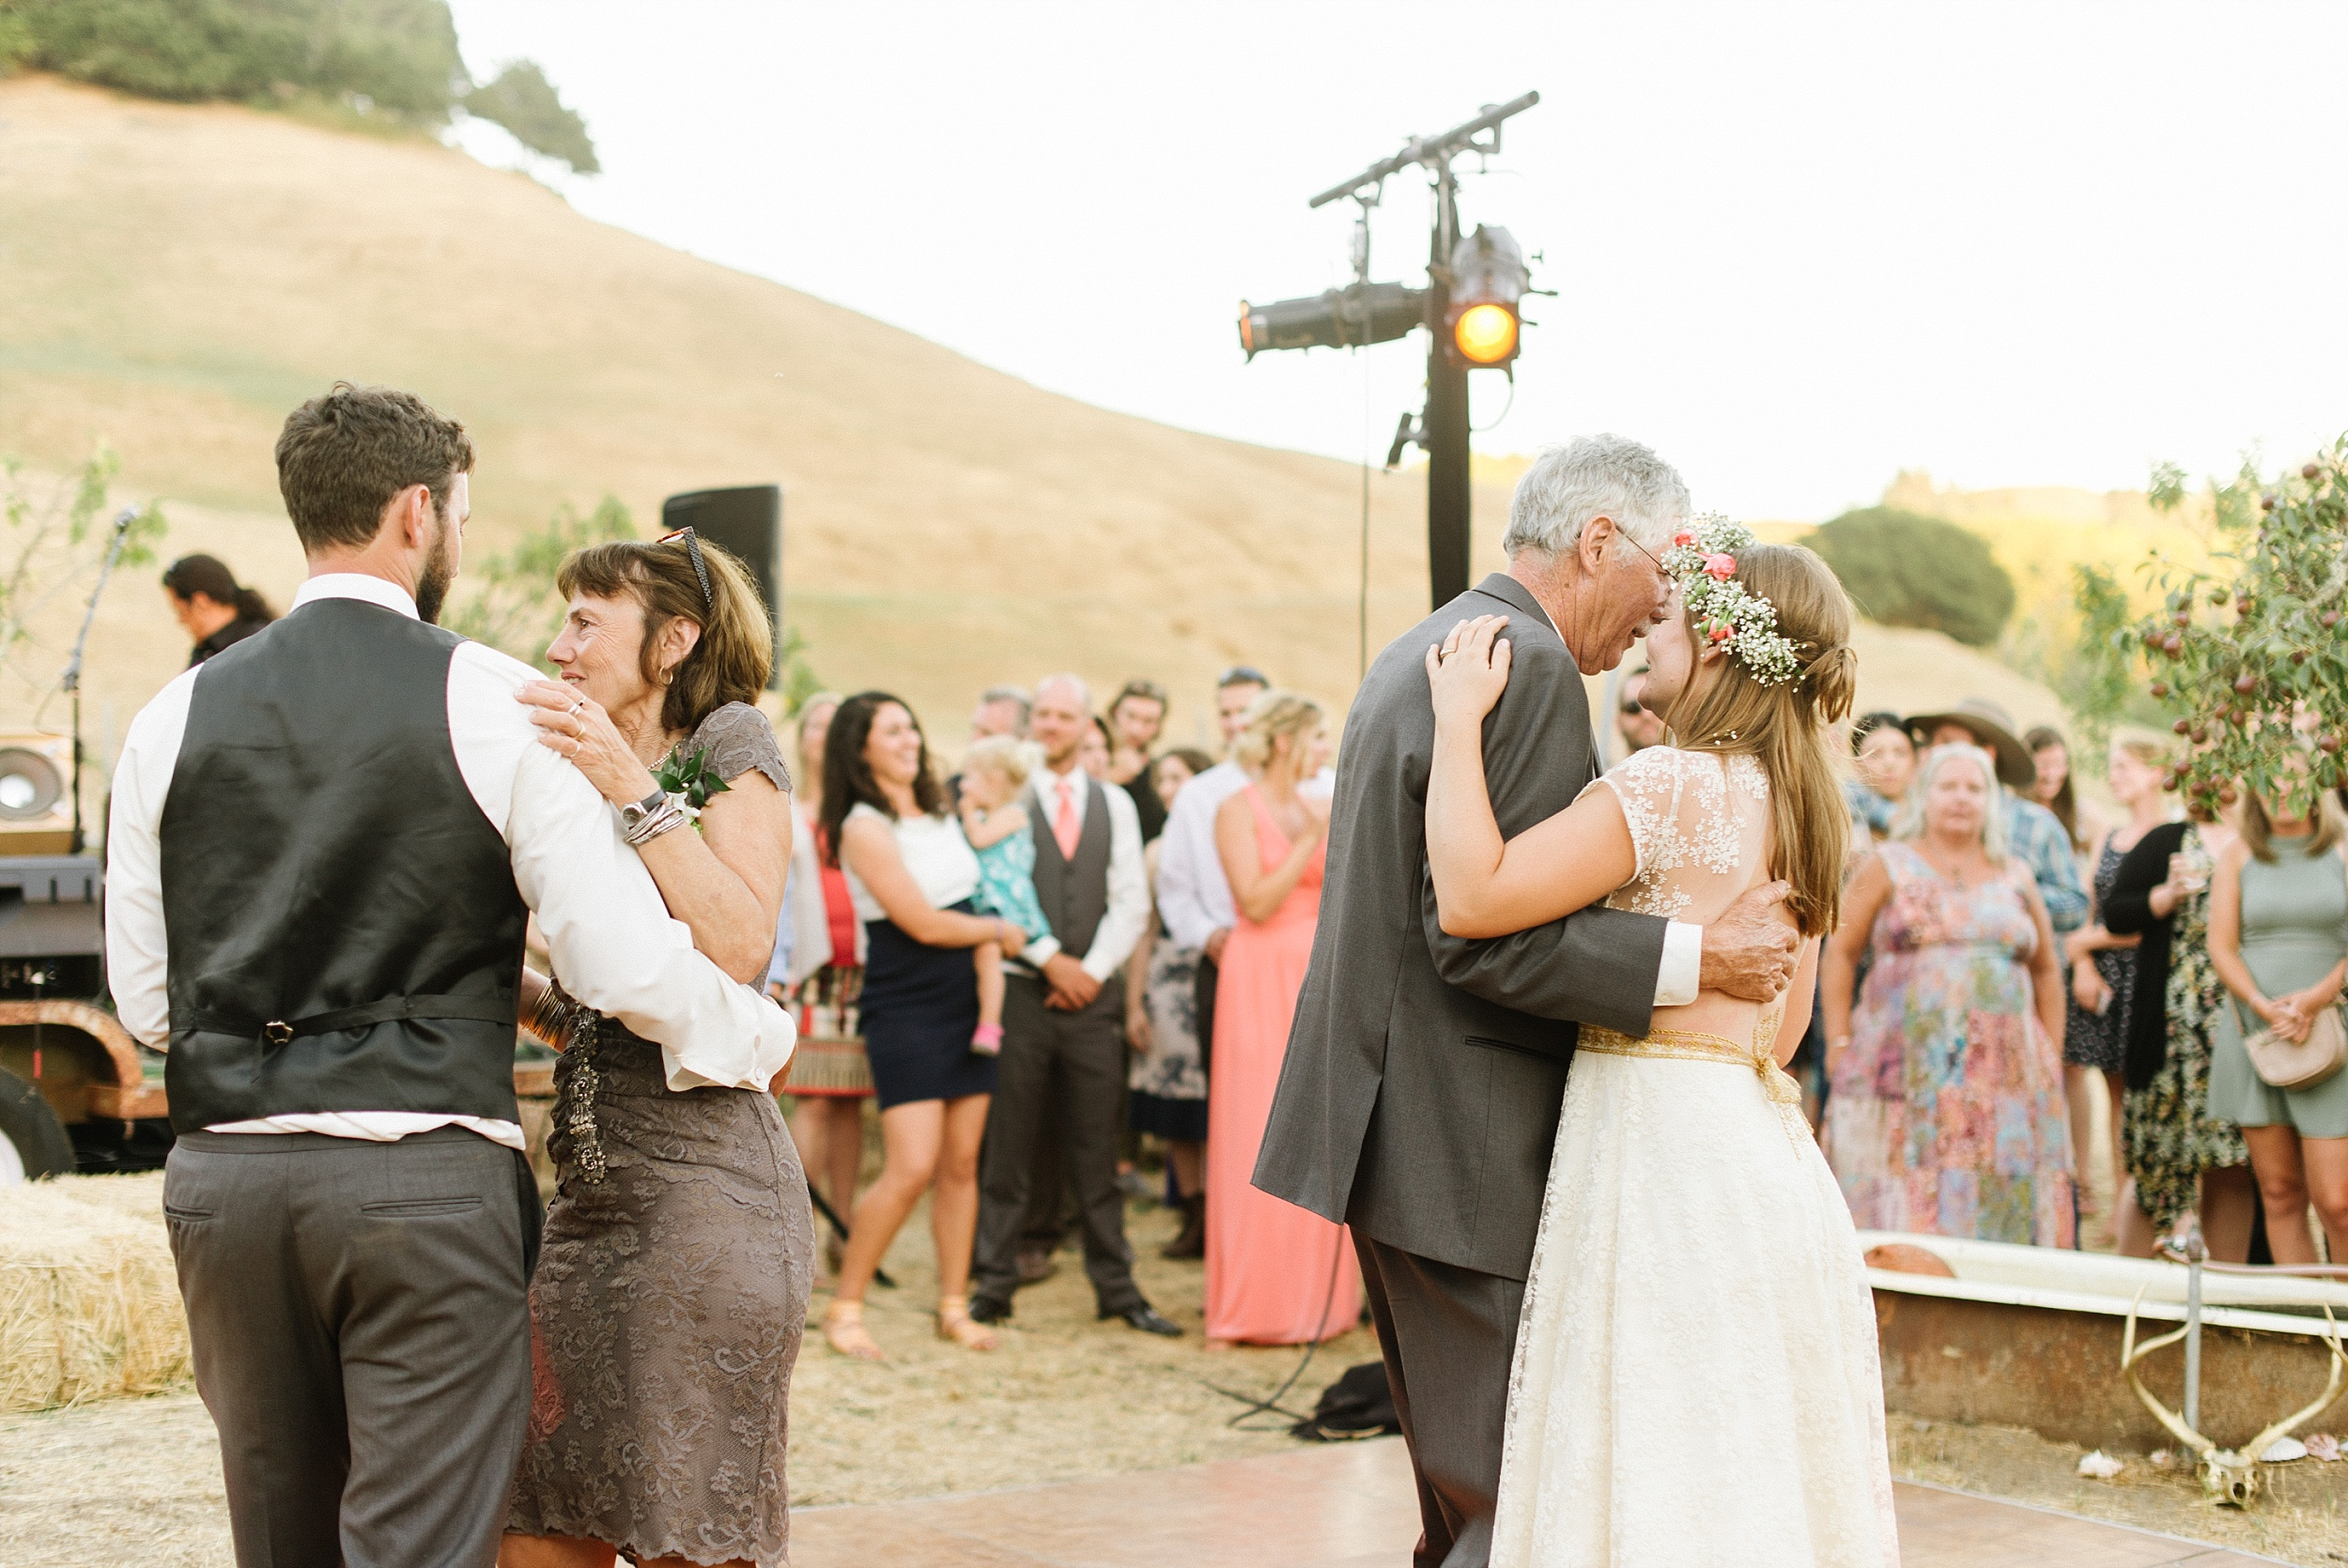 fairfax_ranch_wedding_chelsea_dier_photography_0049.jpg